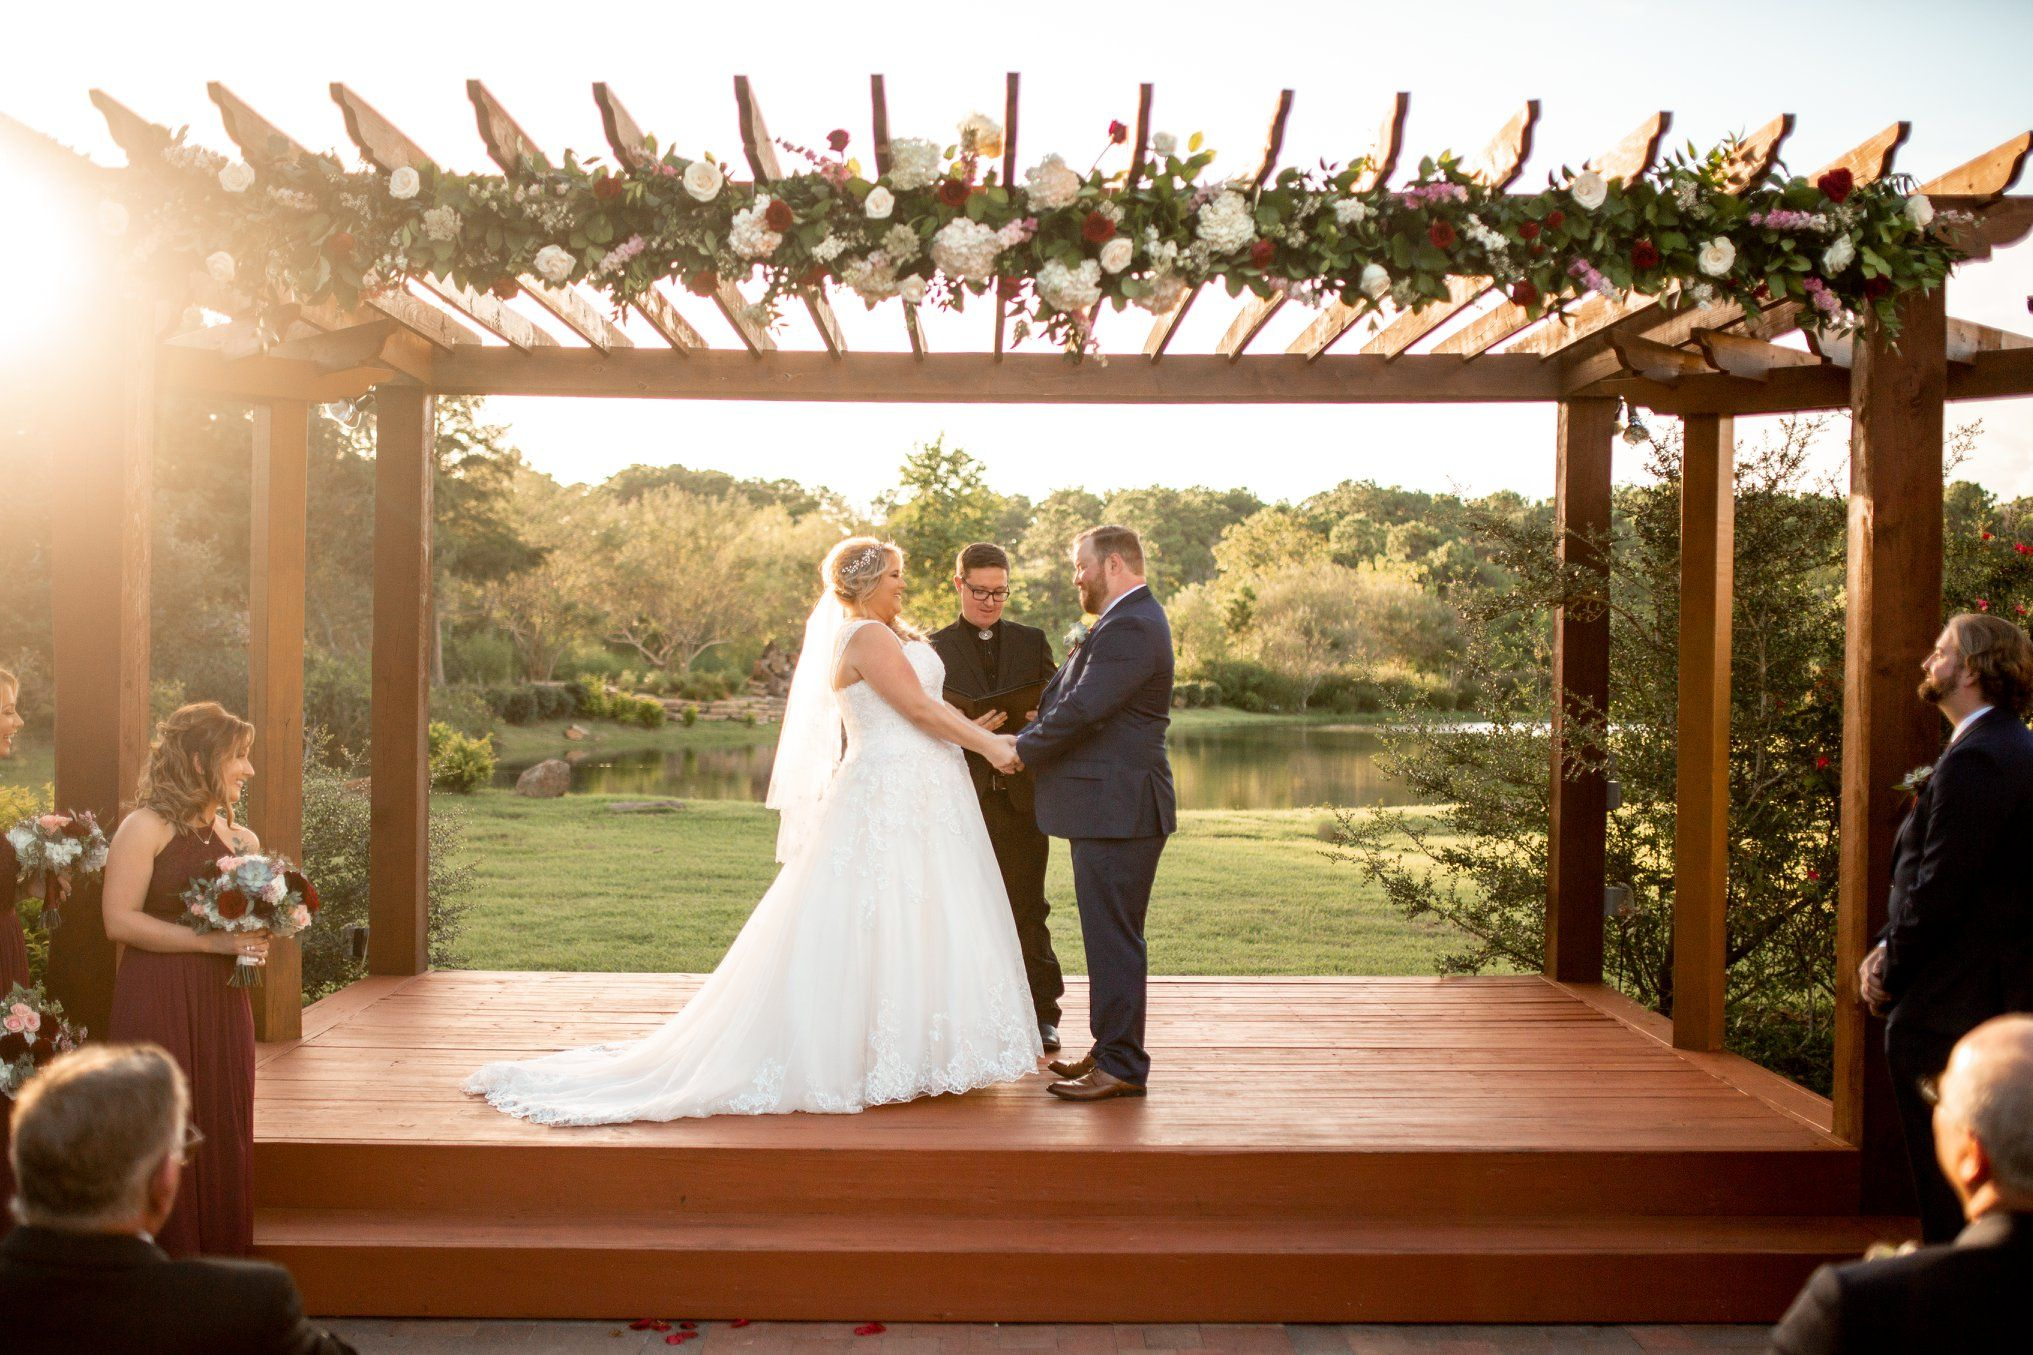 An Outdoor Sunset Wedding Is Always So Beautiful At Tuscan Courtyard Houston Venue Clear Lake League City